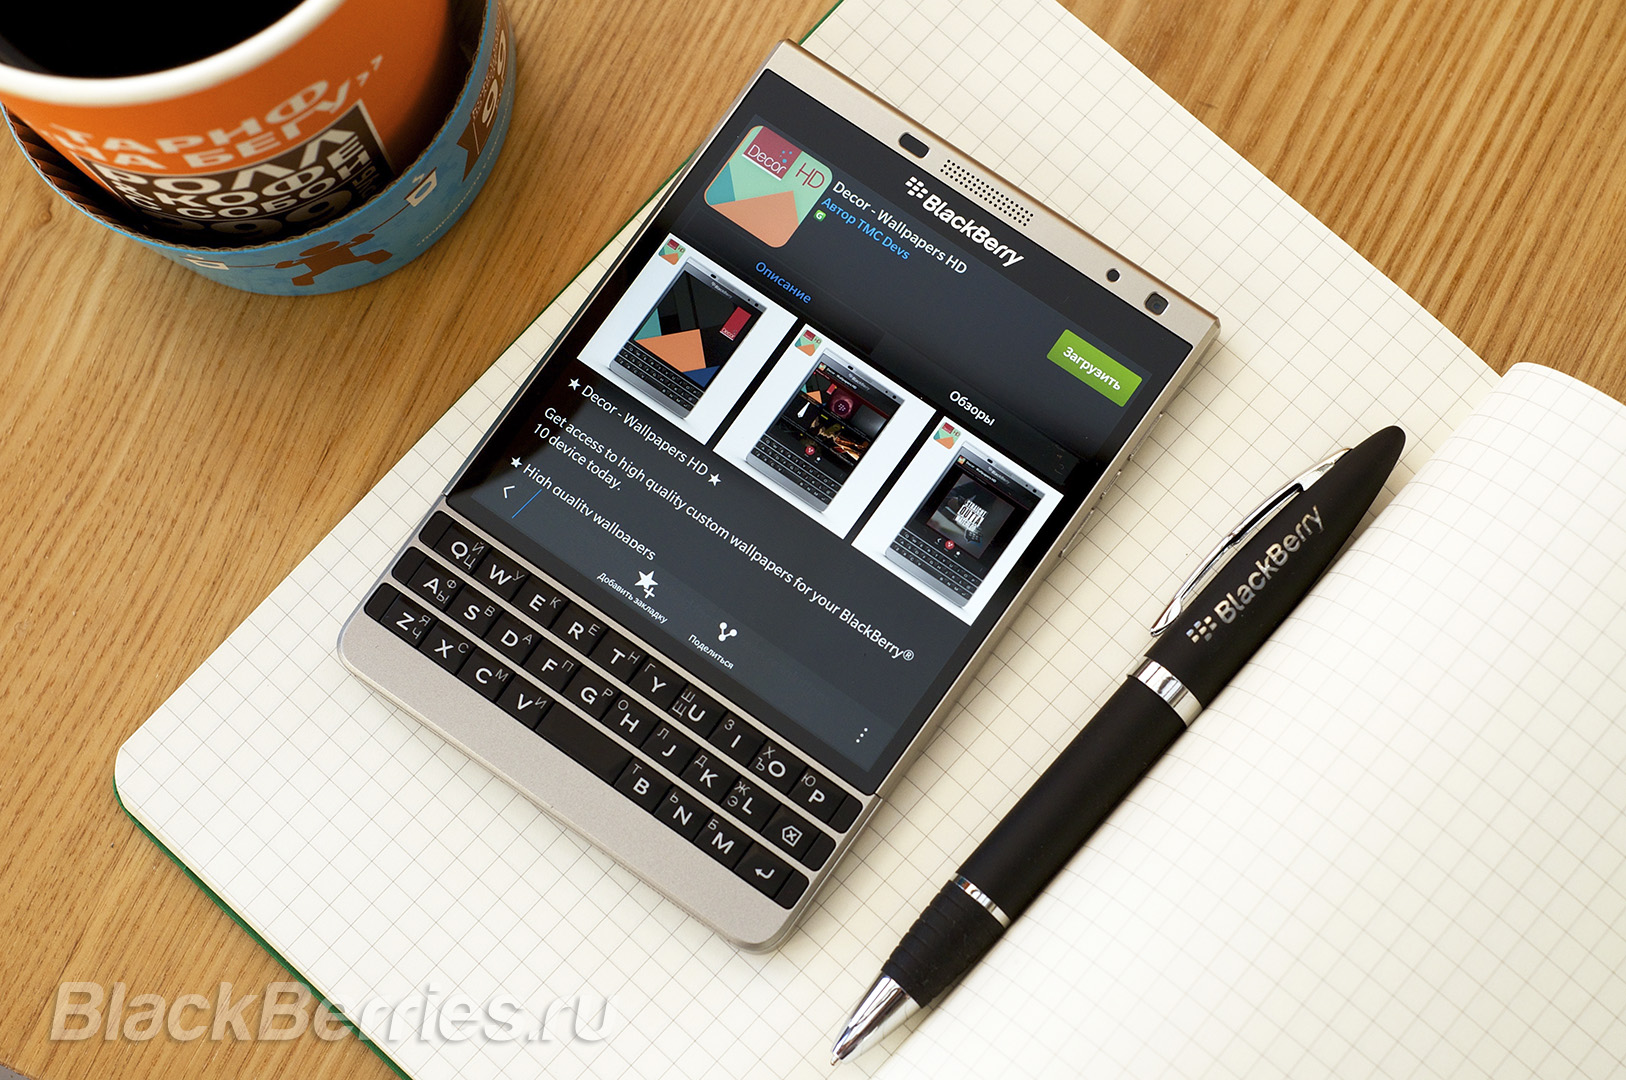 Blackberry Passport Wallpapers Hd Wallpapersafari